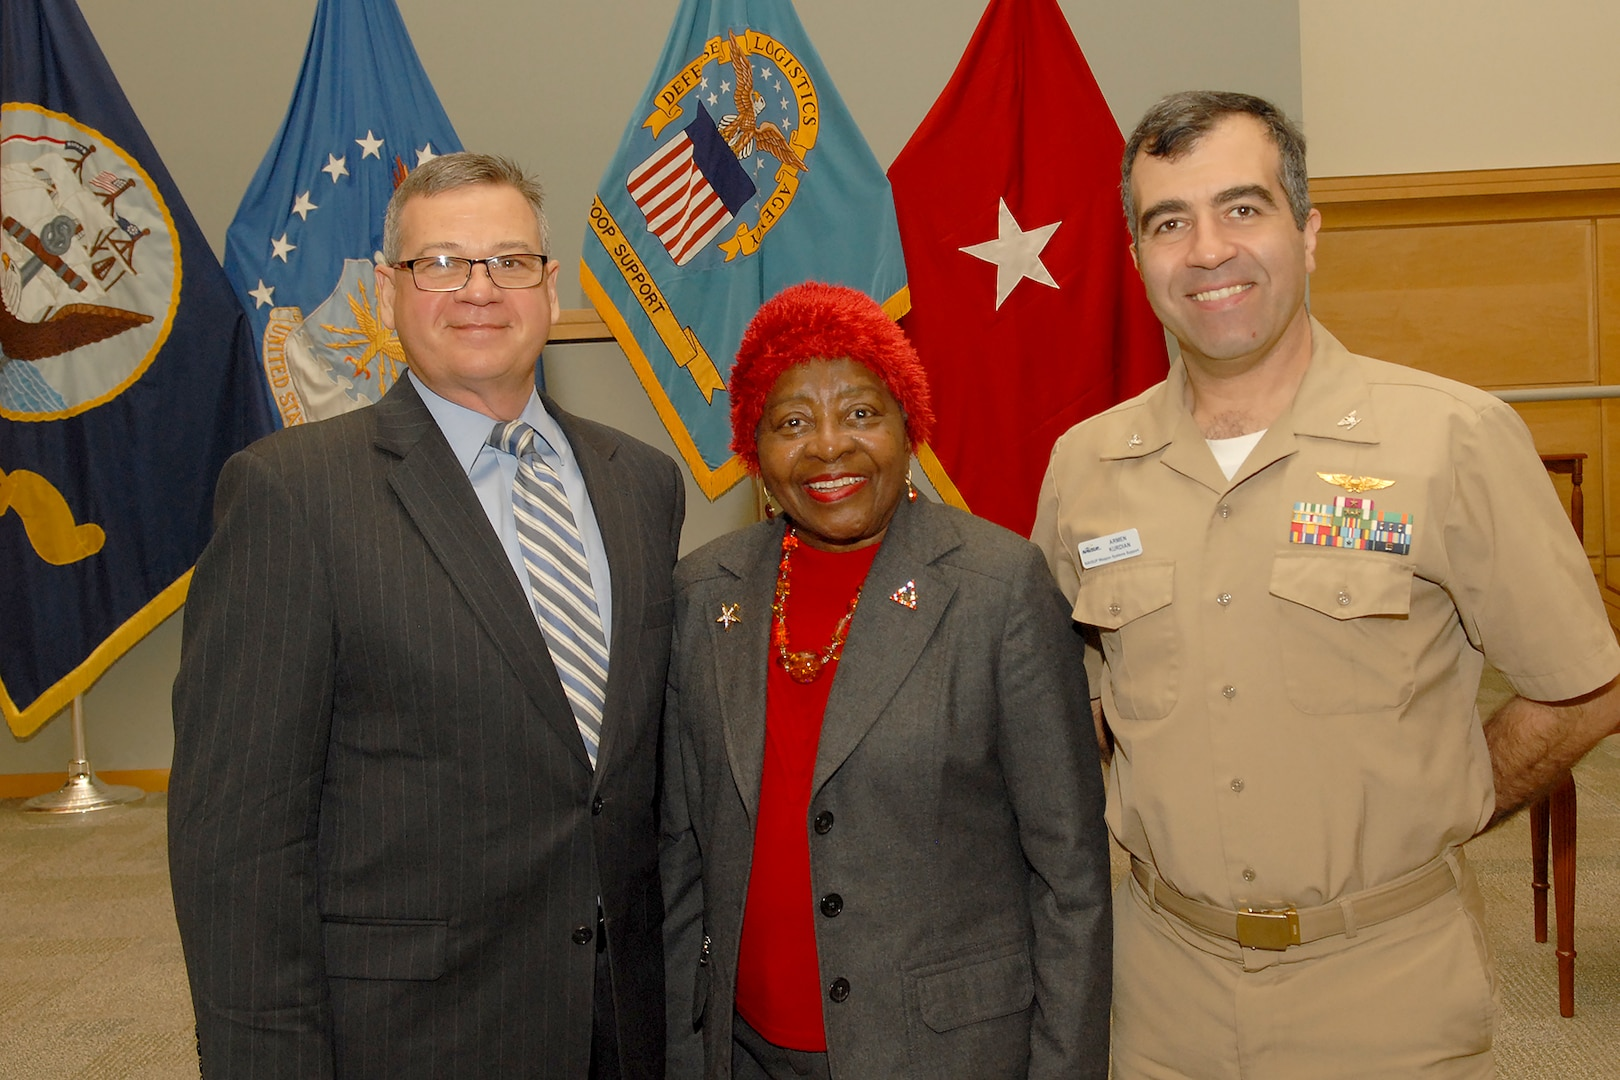 Retired Army Brig. Gen. Clara Adams-Ender (center), is joined by DLA Troop Support Deputy Commander Richard Ellis (left) and NAVSUP Weapons Systems Support Director of Engineering and Product Support Navy Capt. Armen Kurdian (right) following a presentation in honor of Civil Rights leader Dr. Martin Luther King, Jr. Jan. 16 in Philadelphia.